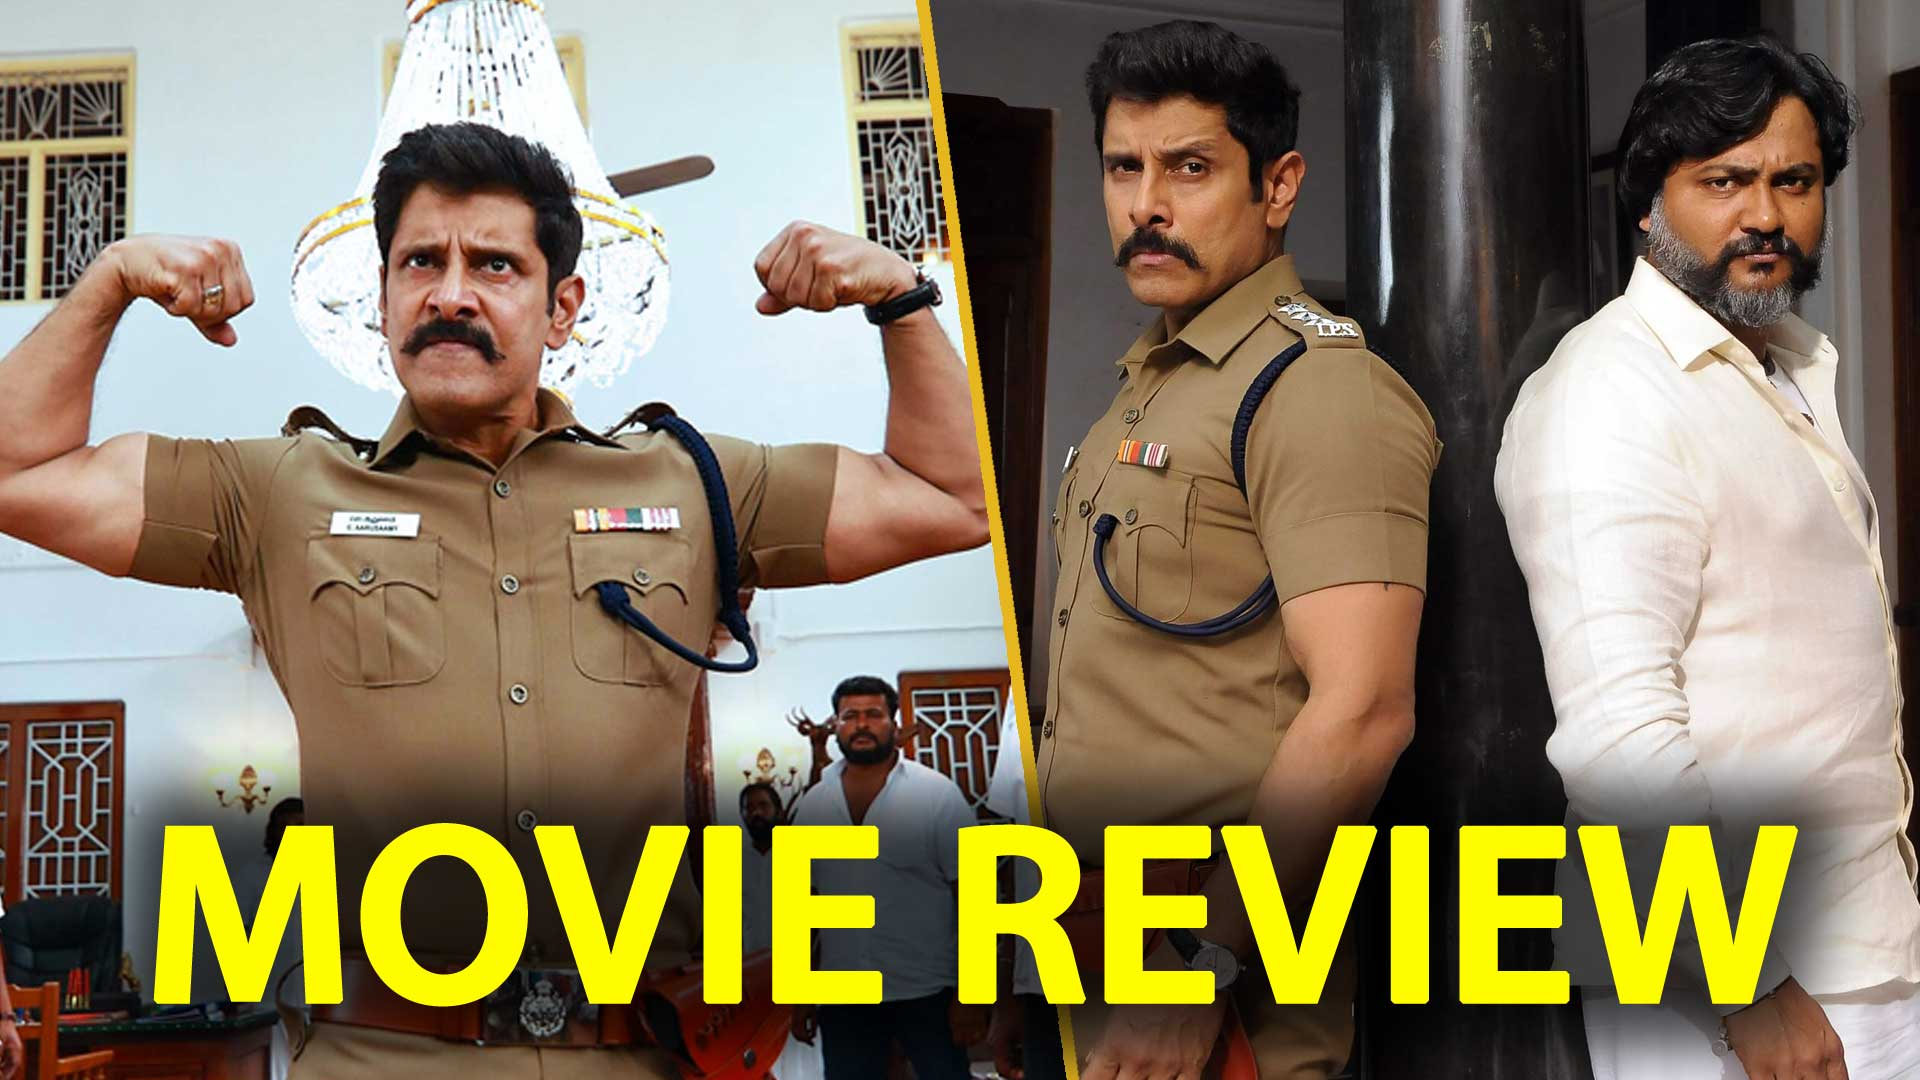 Saamy 2 Movie Review by Praveena | Vikram, Keerthy Suresh, Bobby Simha, Hari| Saamy Square Review